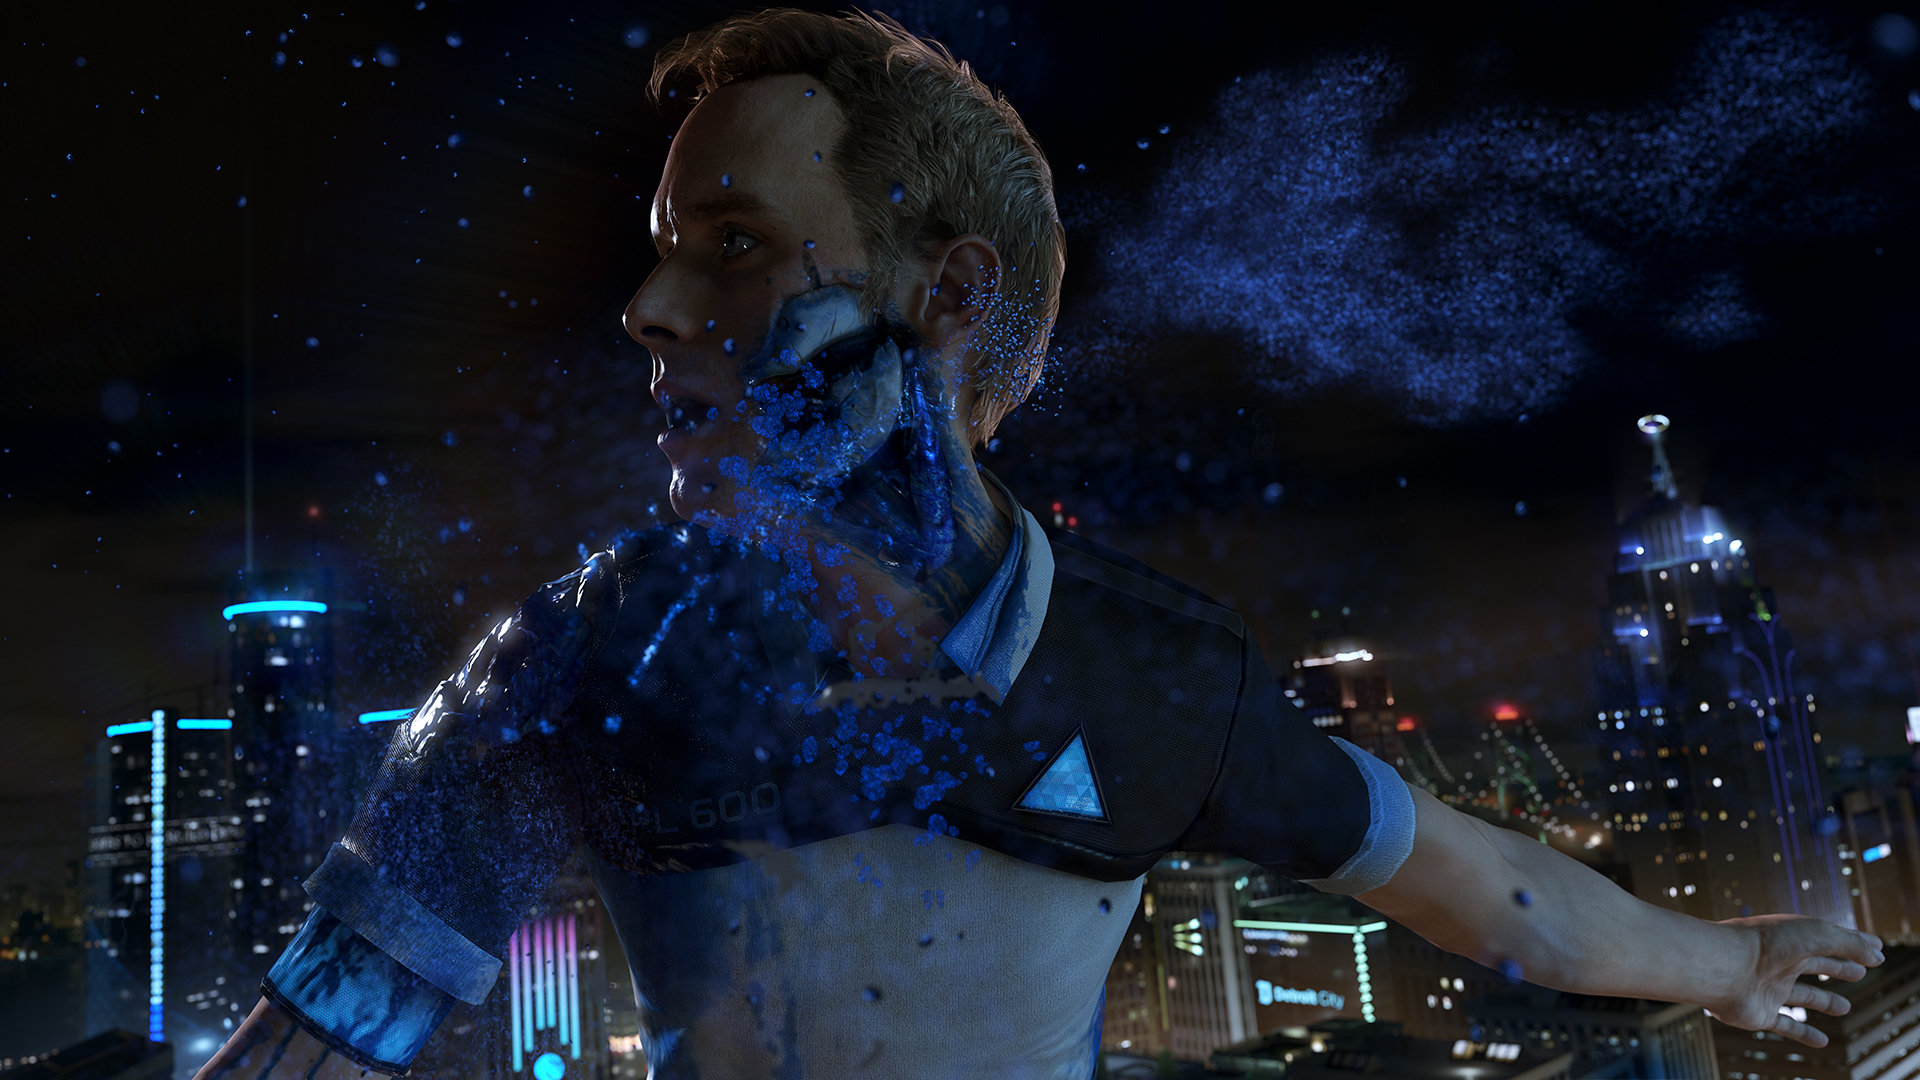 Image result for Detroit become human screenshots 1920x1080